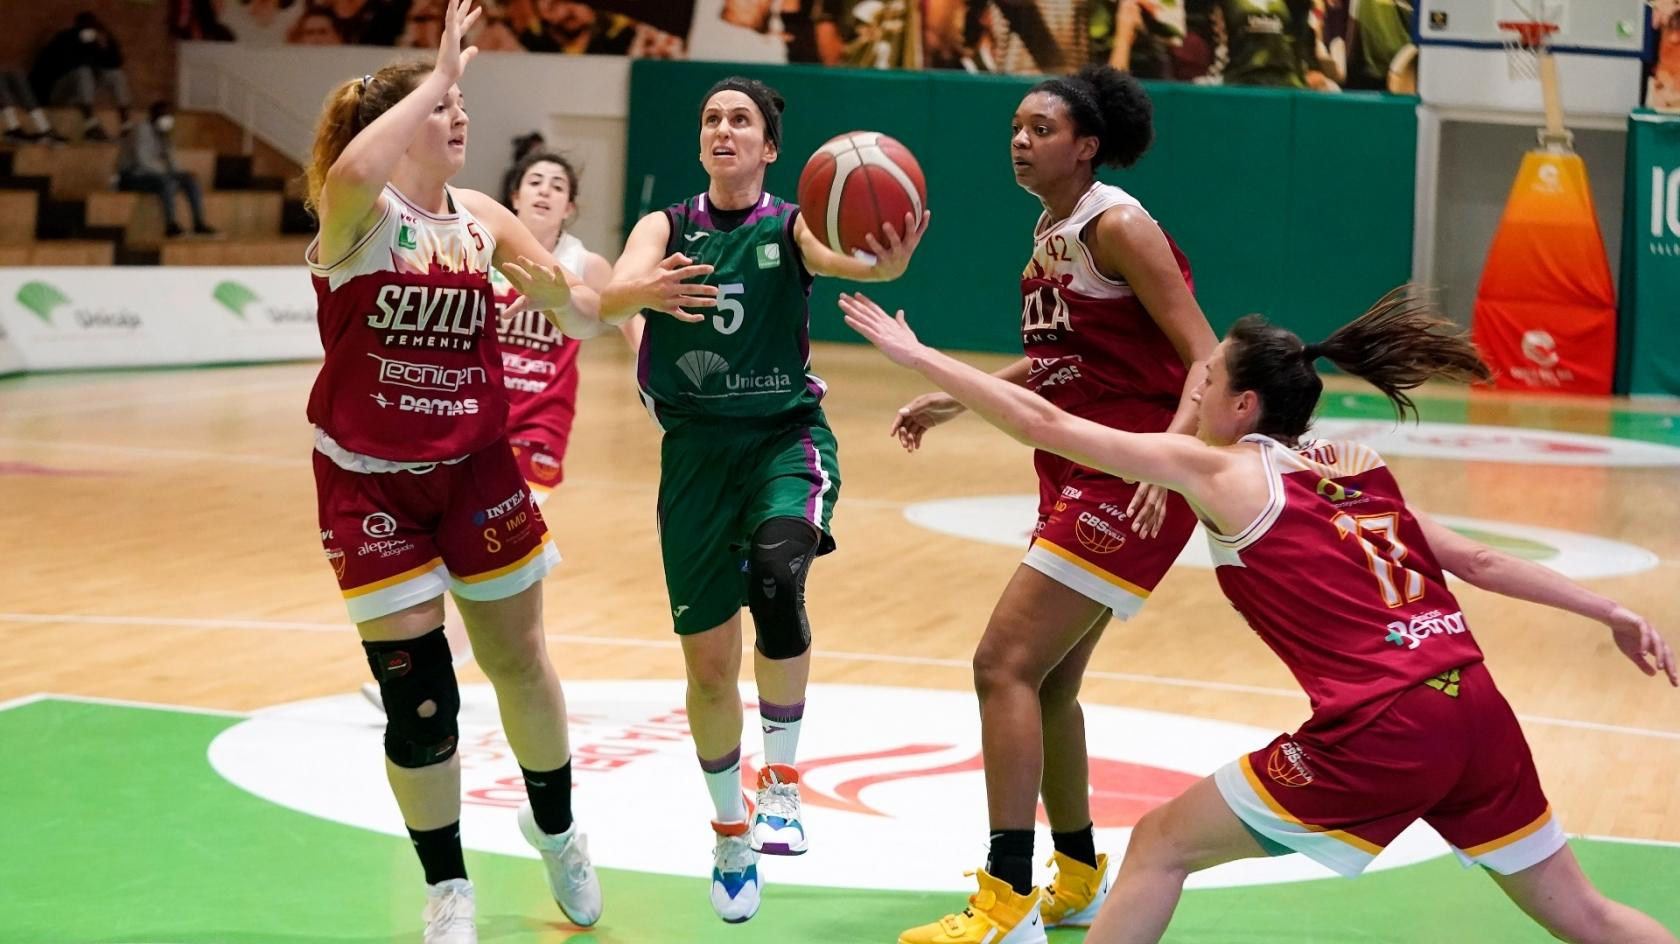 Unicaja is redeemed in Los Guindos (71-40)